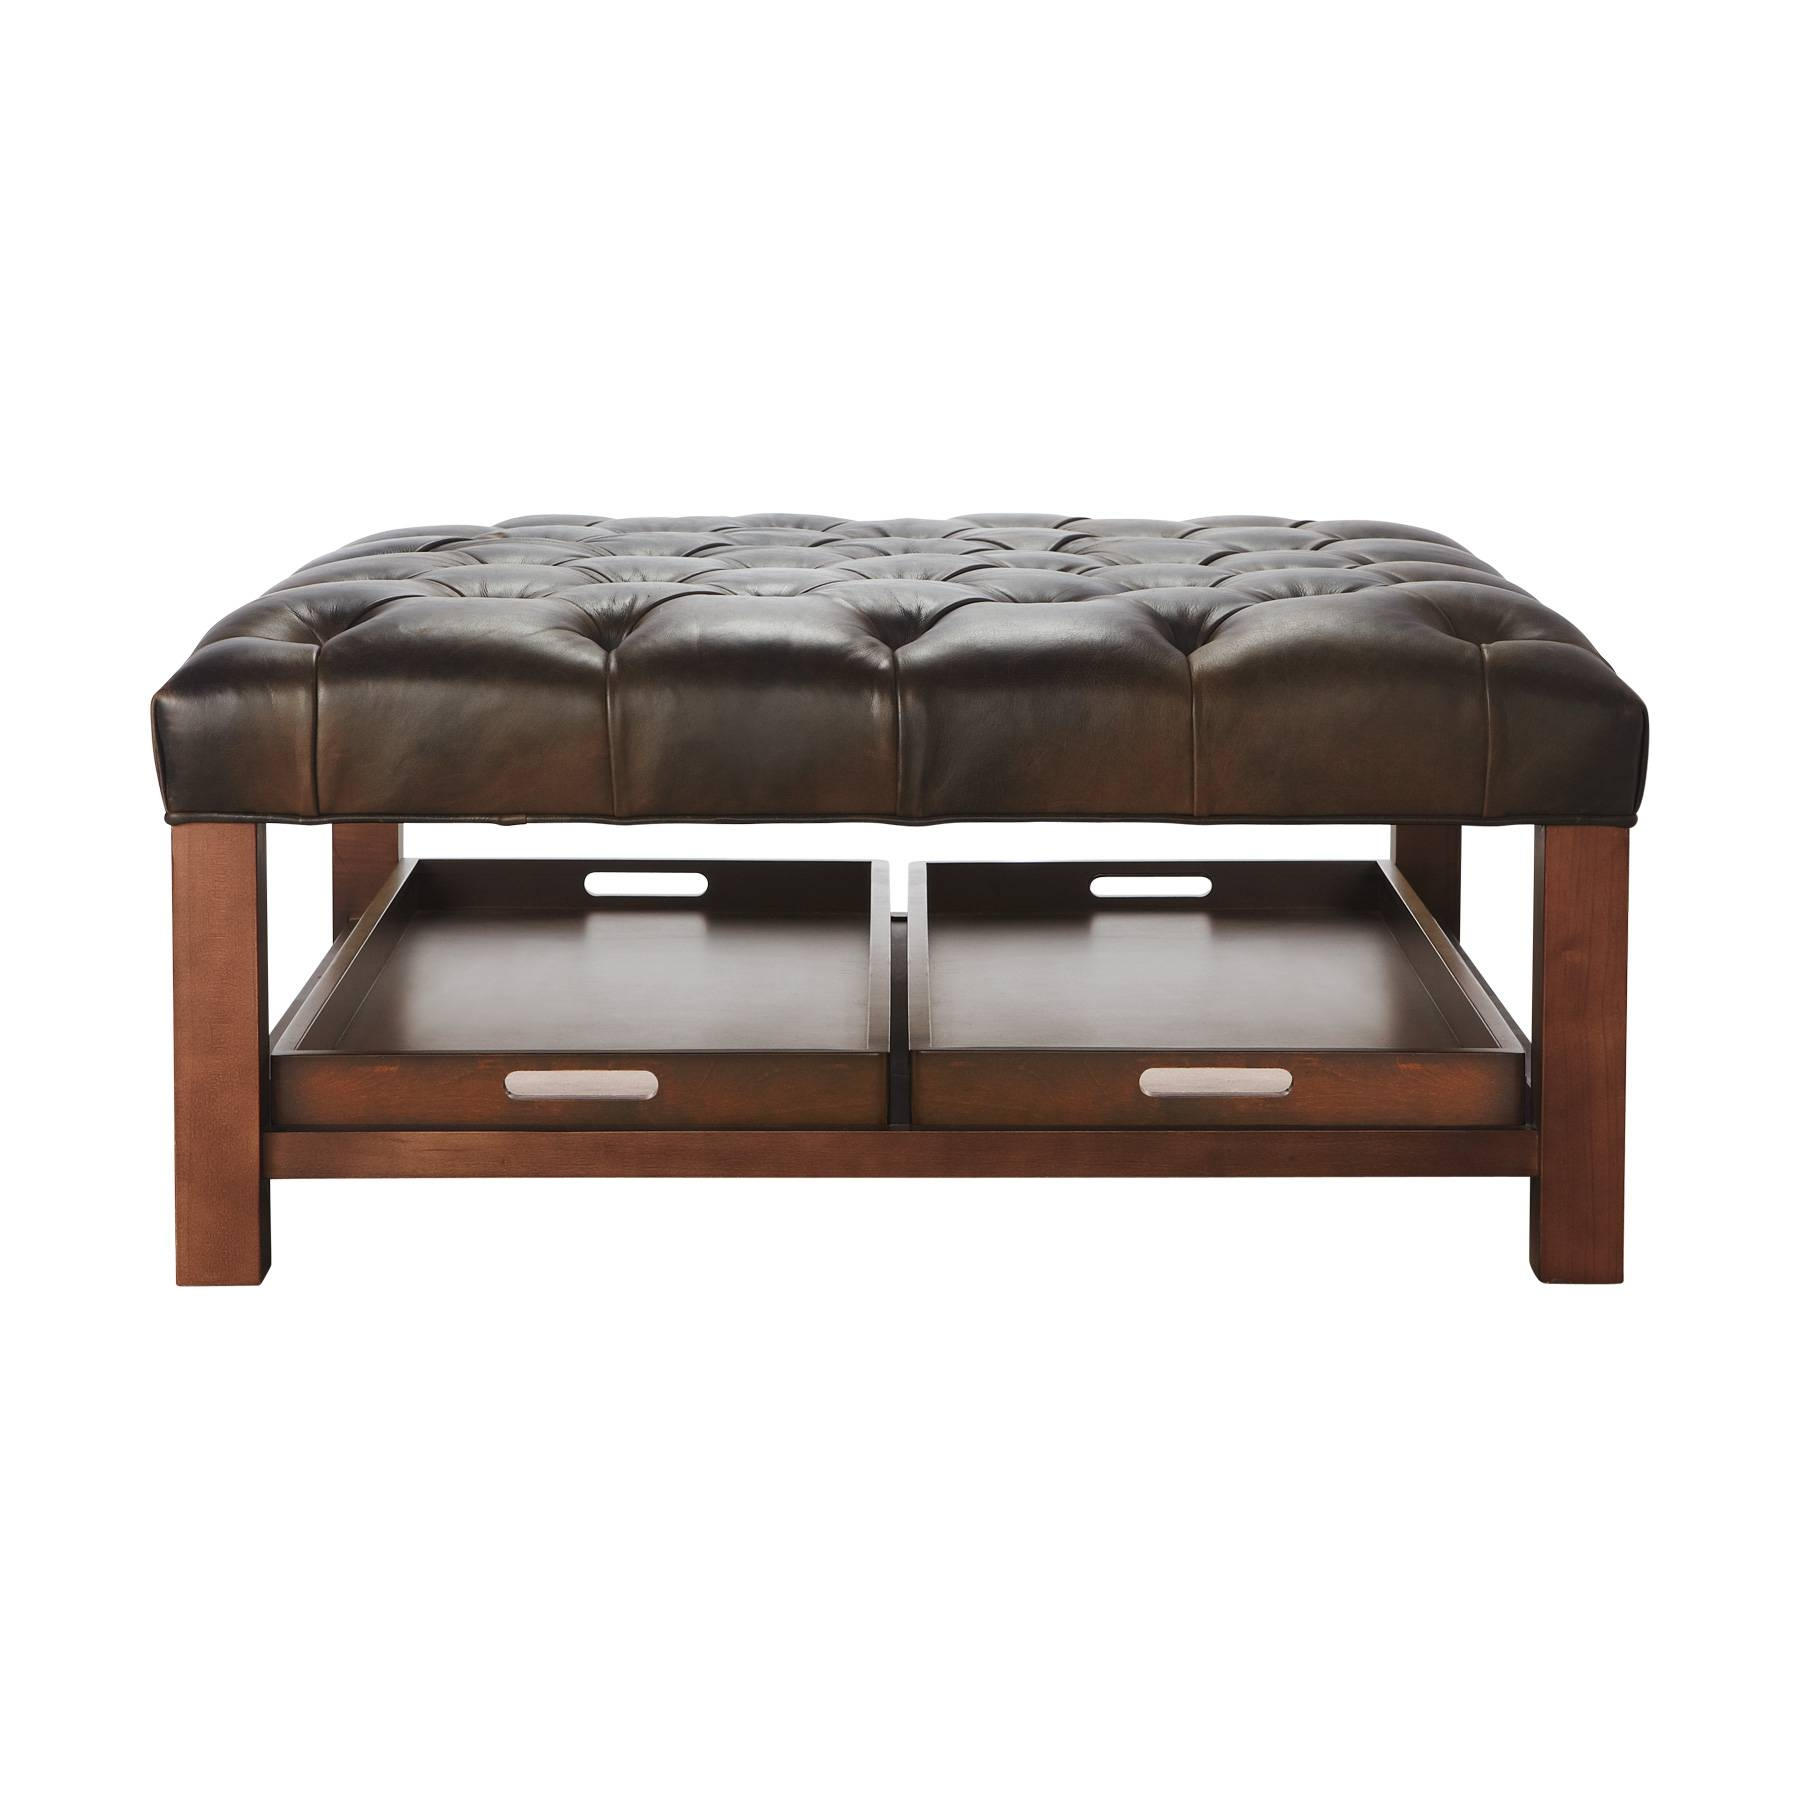 Coffee Table: Excellent Leather Ottoman Coffee Table Ideas Ottoman for Round Upholstered Coffee Tables (Image 10 of 30)